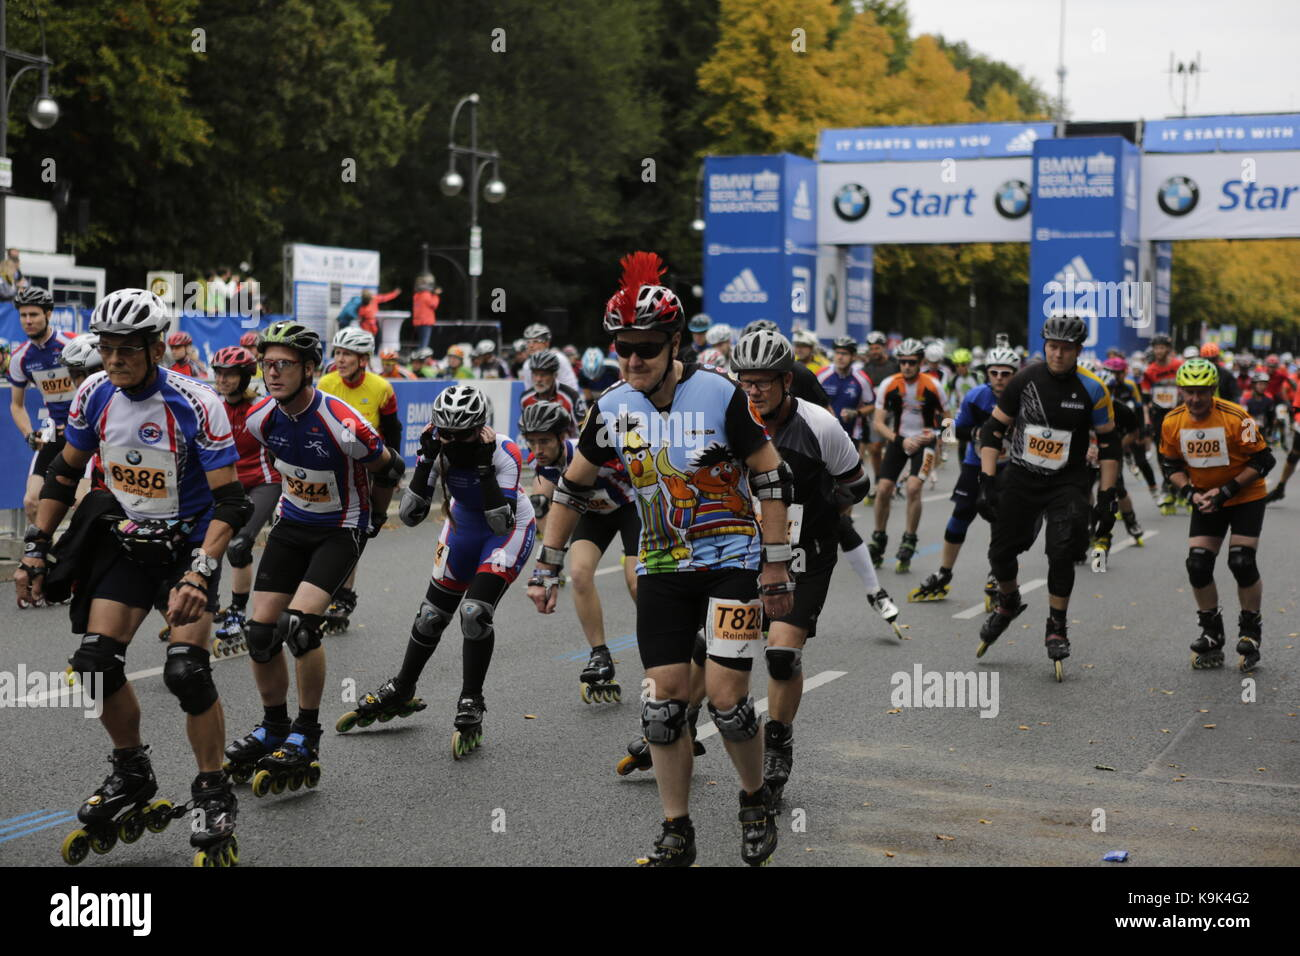 Berlin, Germany. 23rd September 2017. The skaters start the race in several waves. Over 5,500 skater took part in the 2017 BMW Berlin Marathon Inline skating race, a day ahead of the  Marathon race. Bart Swings from Belgium won the race in 58:42 for the 5th year in a row. Credit: Michael Debets/Alamy Live News Stock Photo